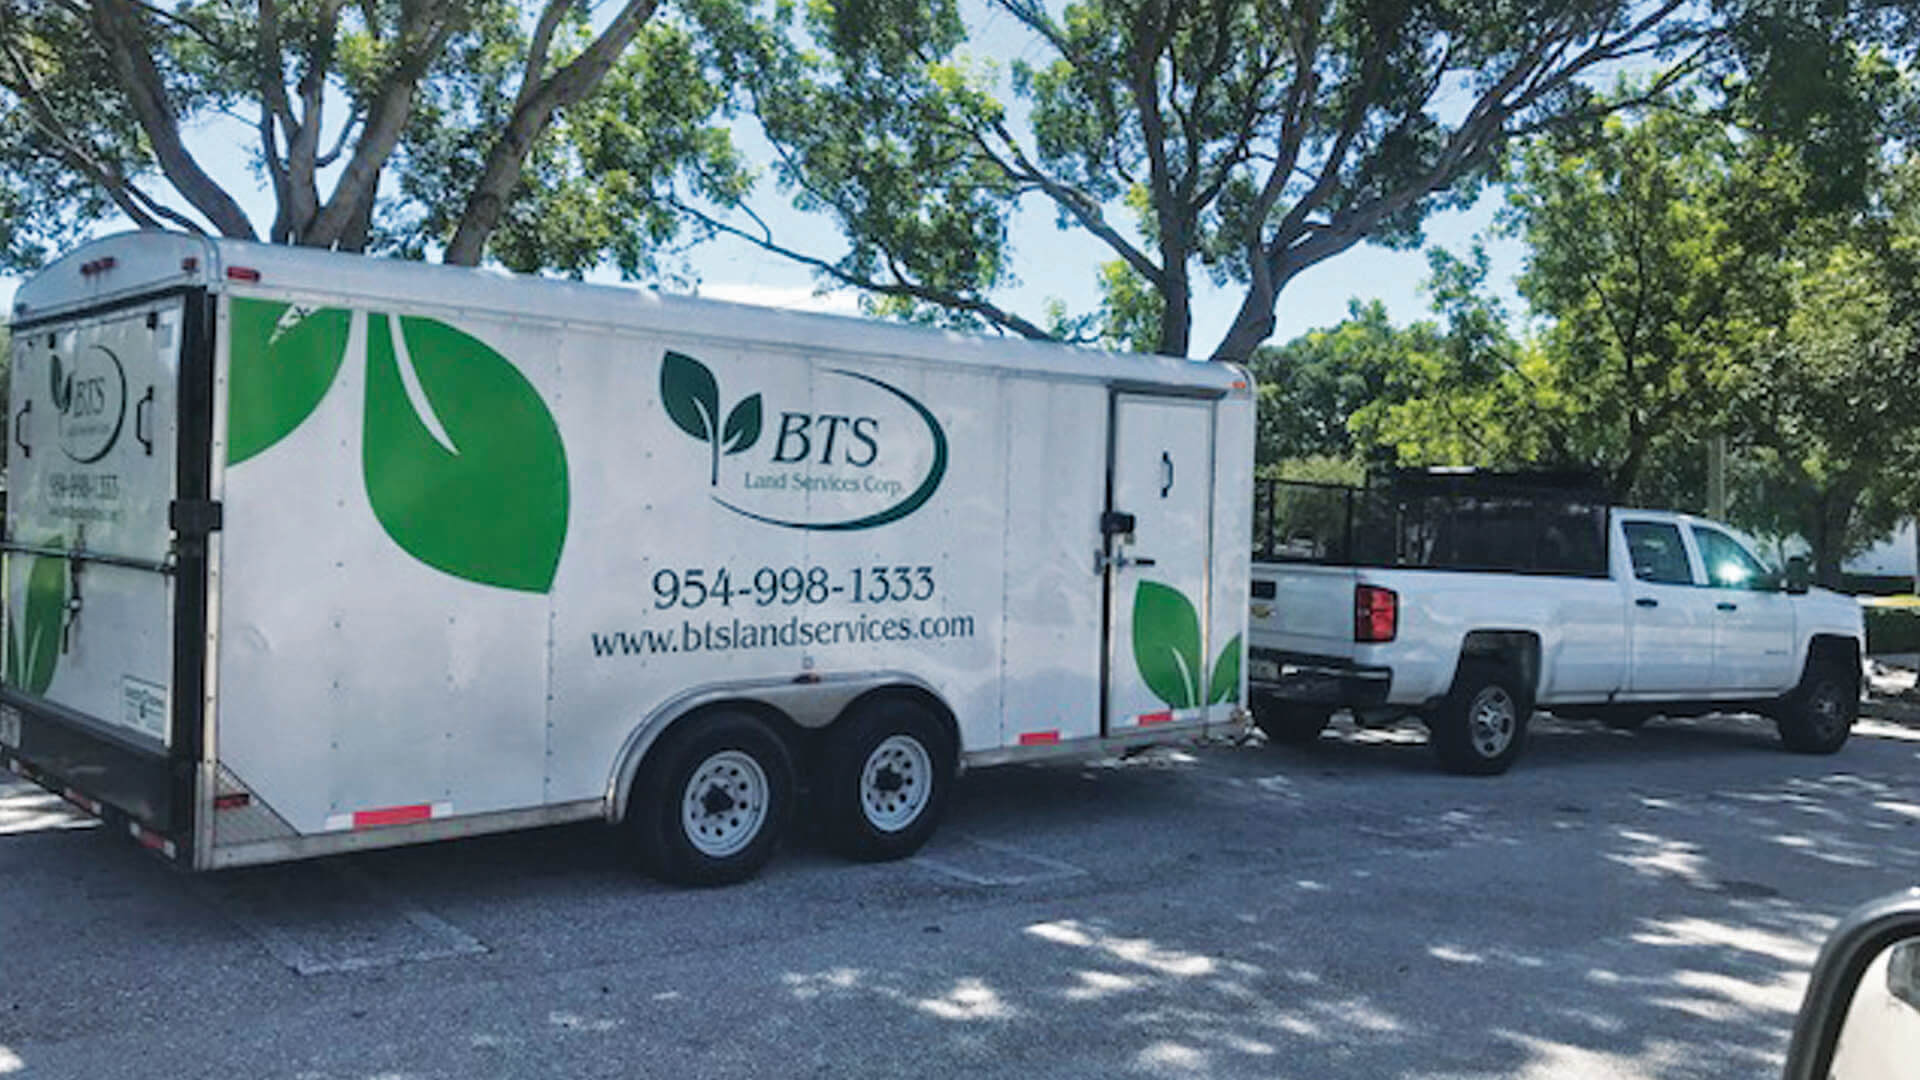 BTS Land Services Corp truck and trailer for commercial lawn and landscaping services.